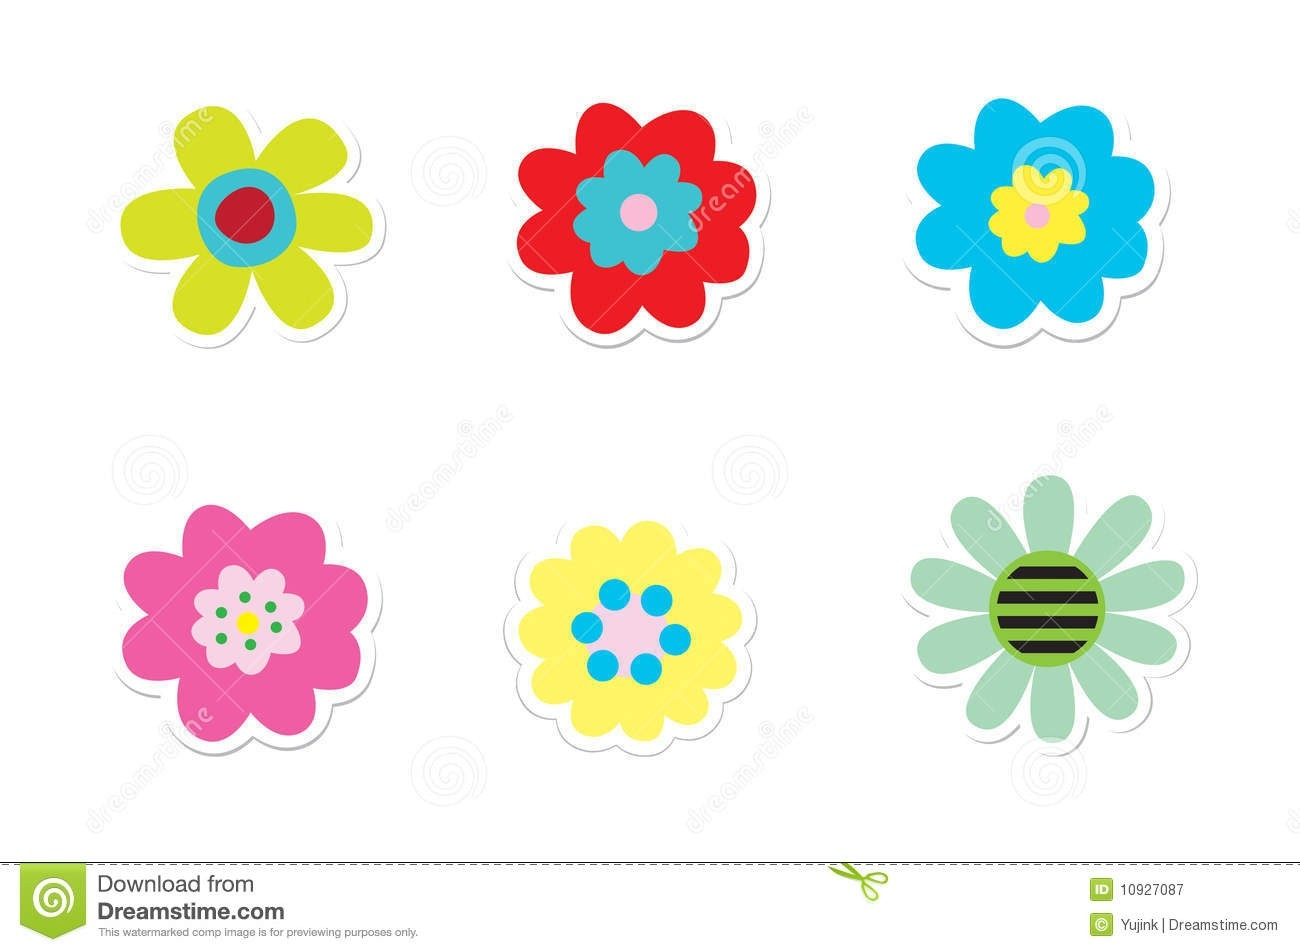 Flower Stickers Stock Vector. Illustration Of Color, Botany - 10927087 within Flower Stickers For Cards 26725